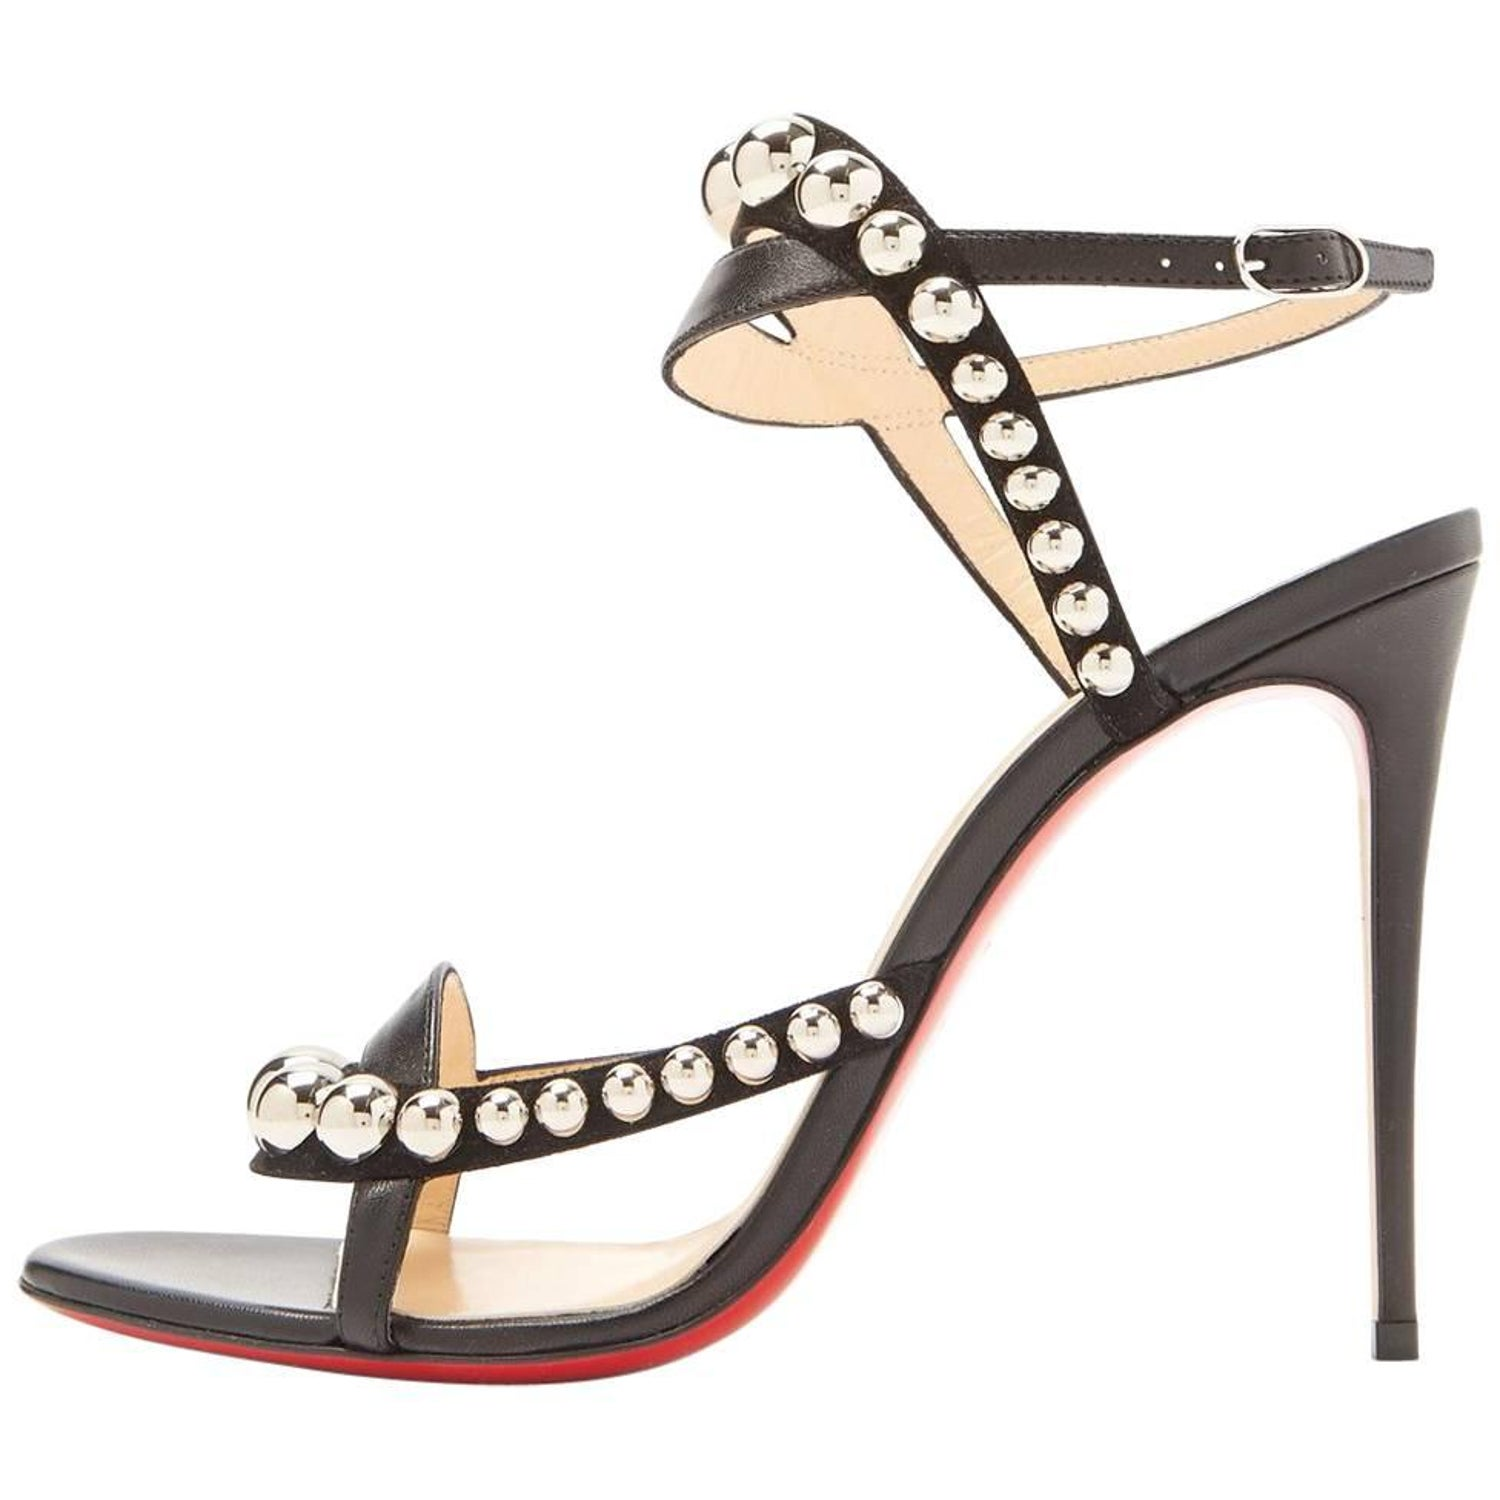 dc041dac87da Christian Louboutin Black Suede Silver Stud Evening Sandals Heels For Sale  at 1stdibs